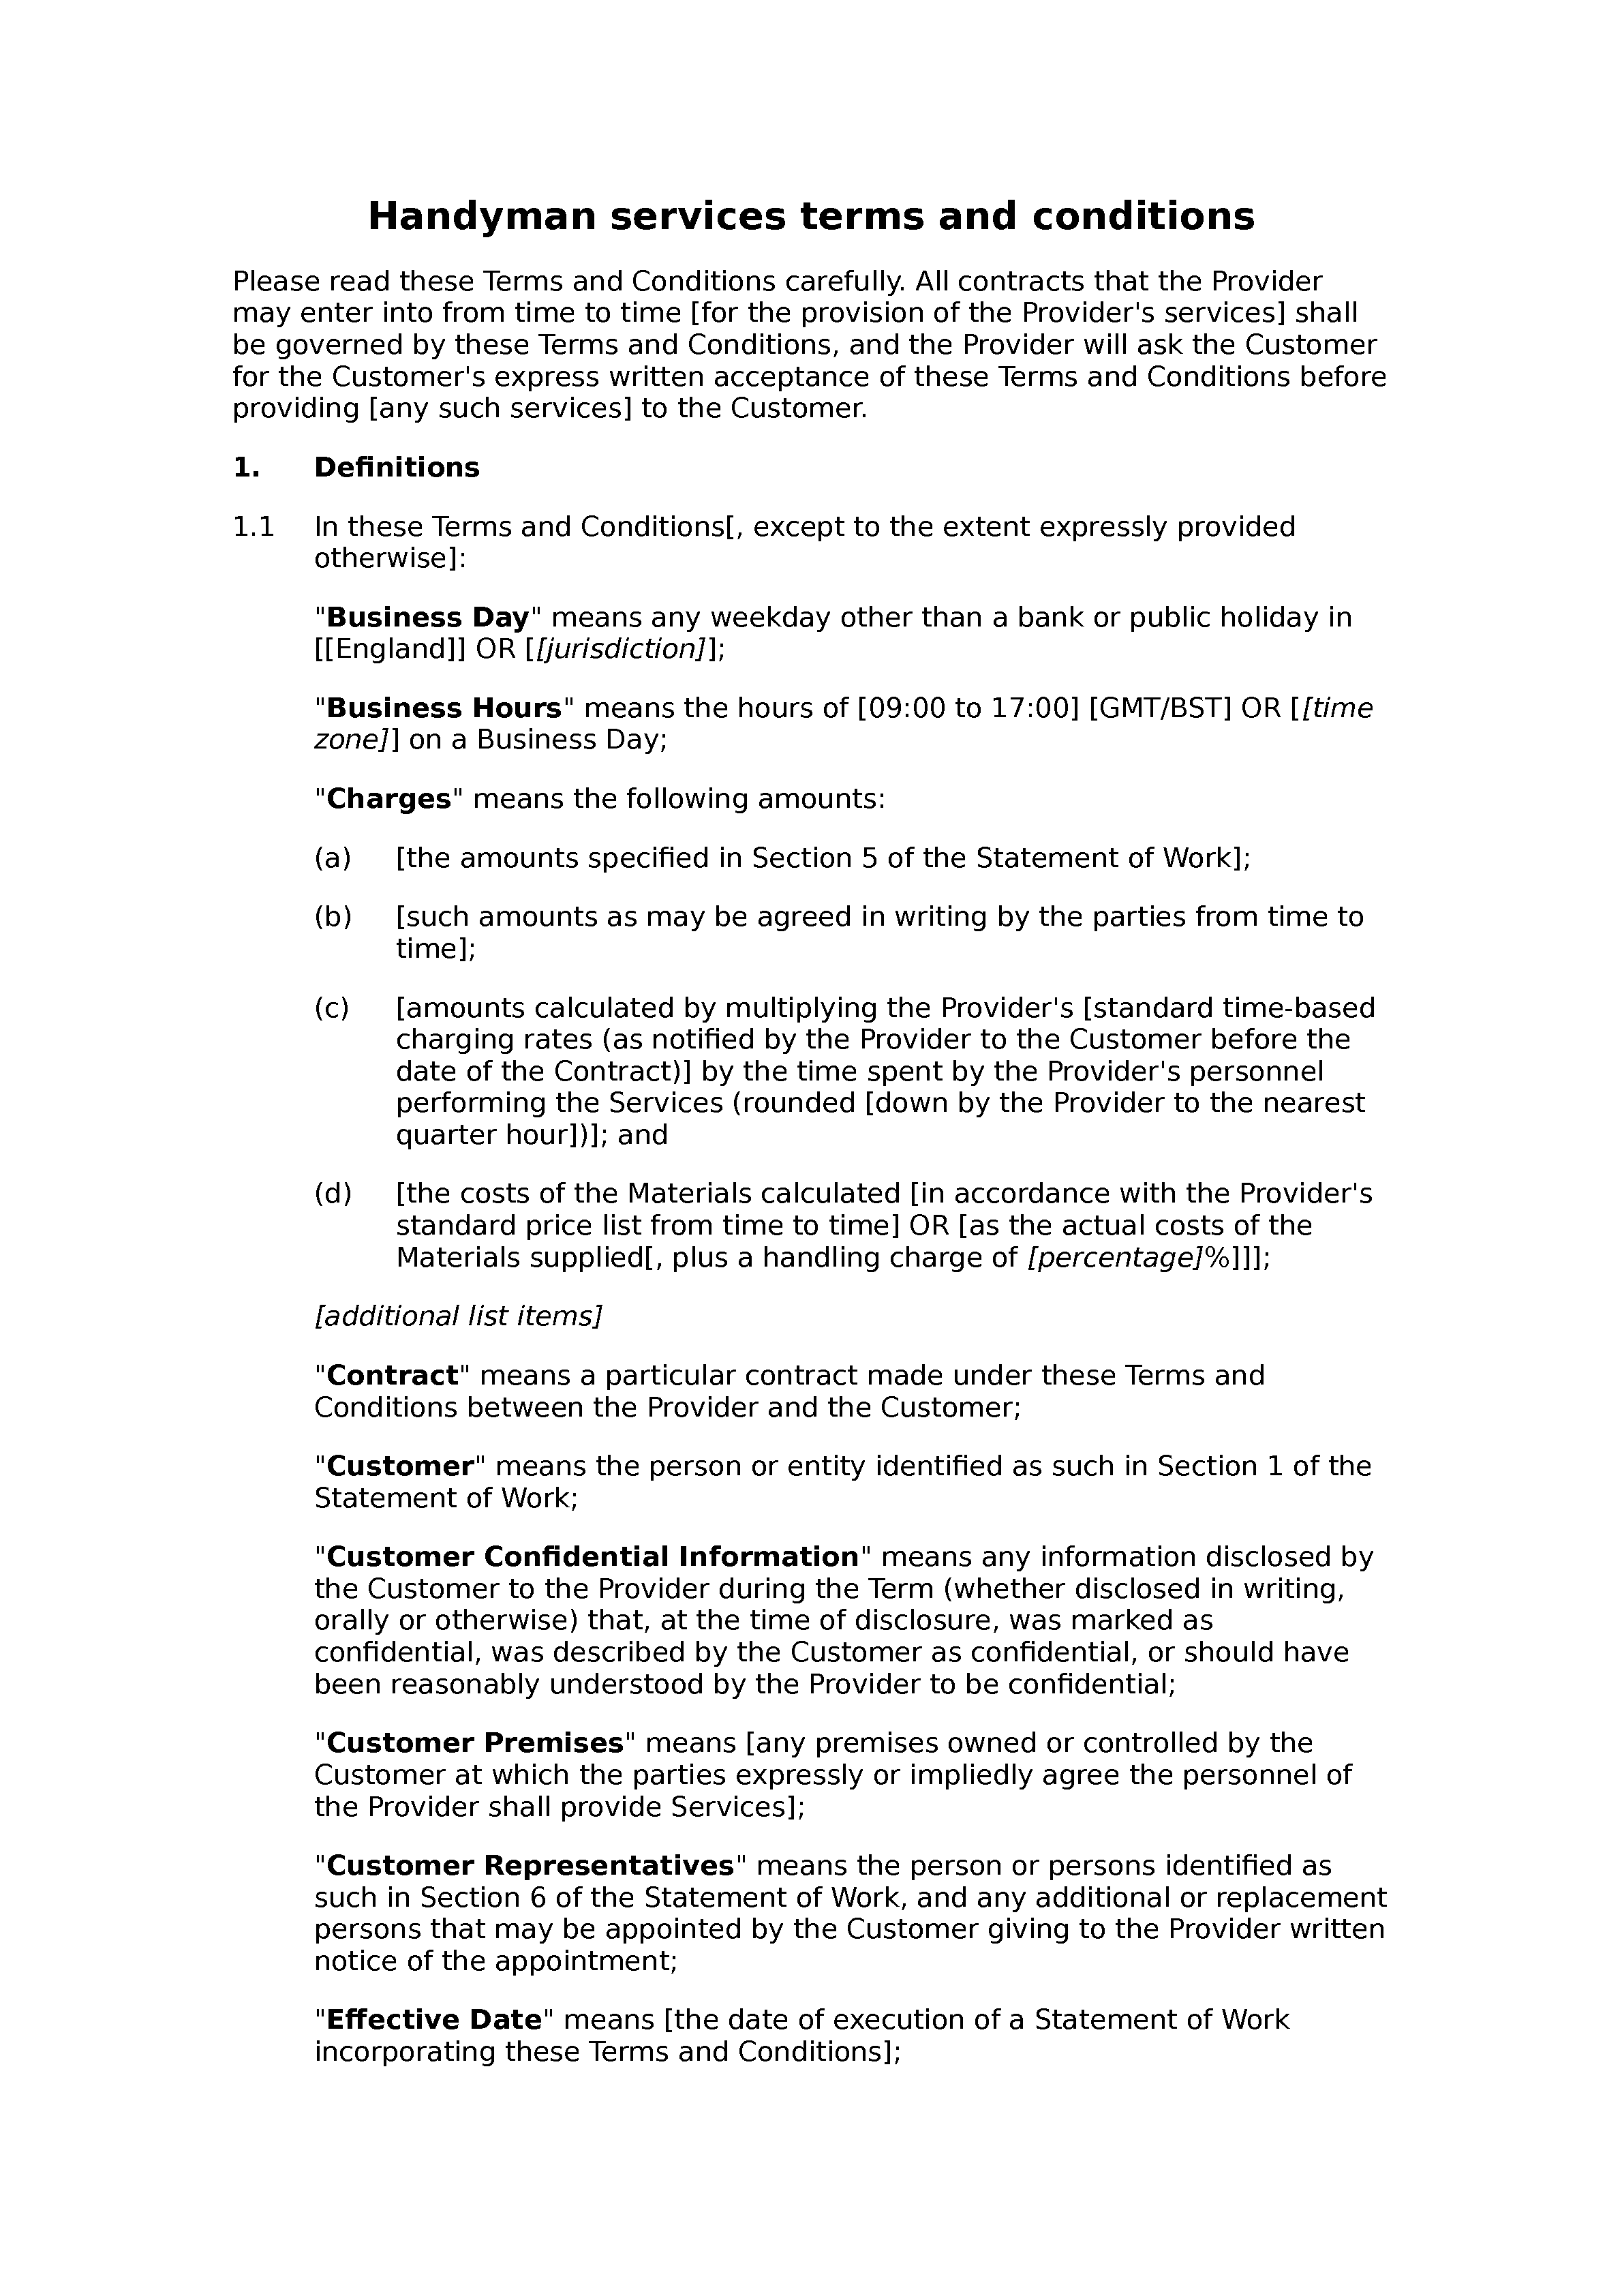 Handyman services terms and conditions docular for Free terms and conditions template for services